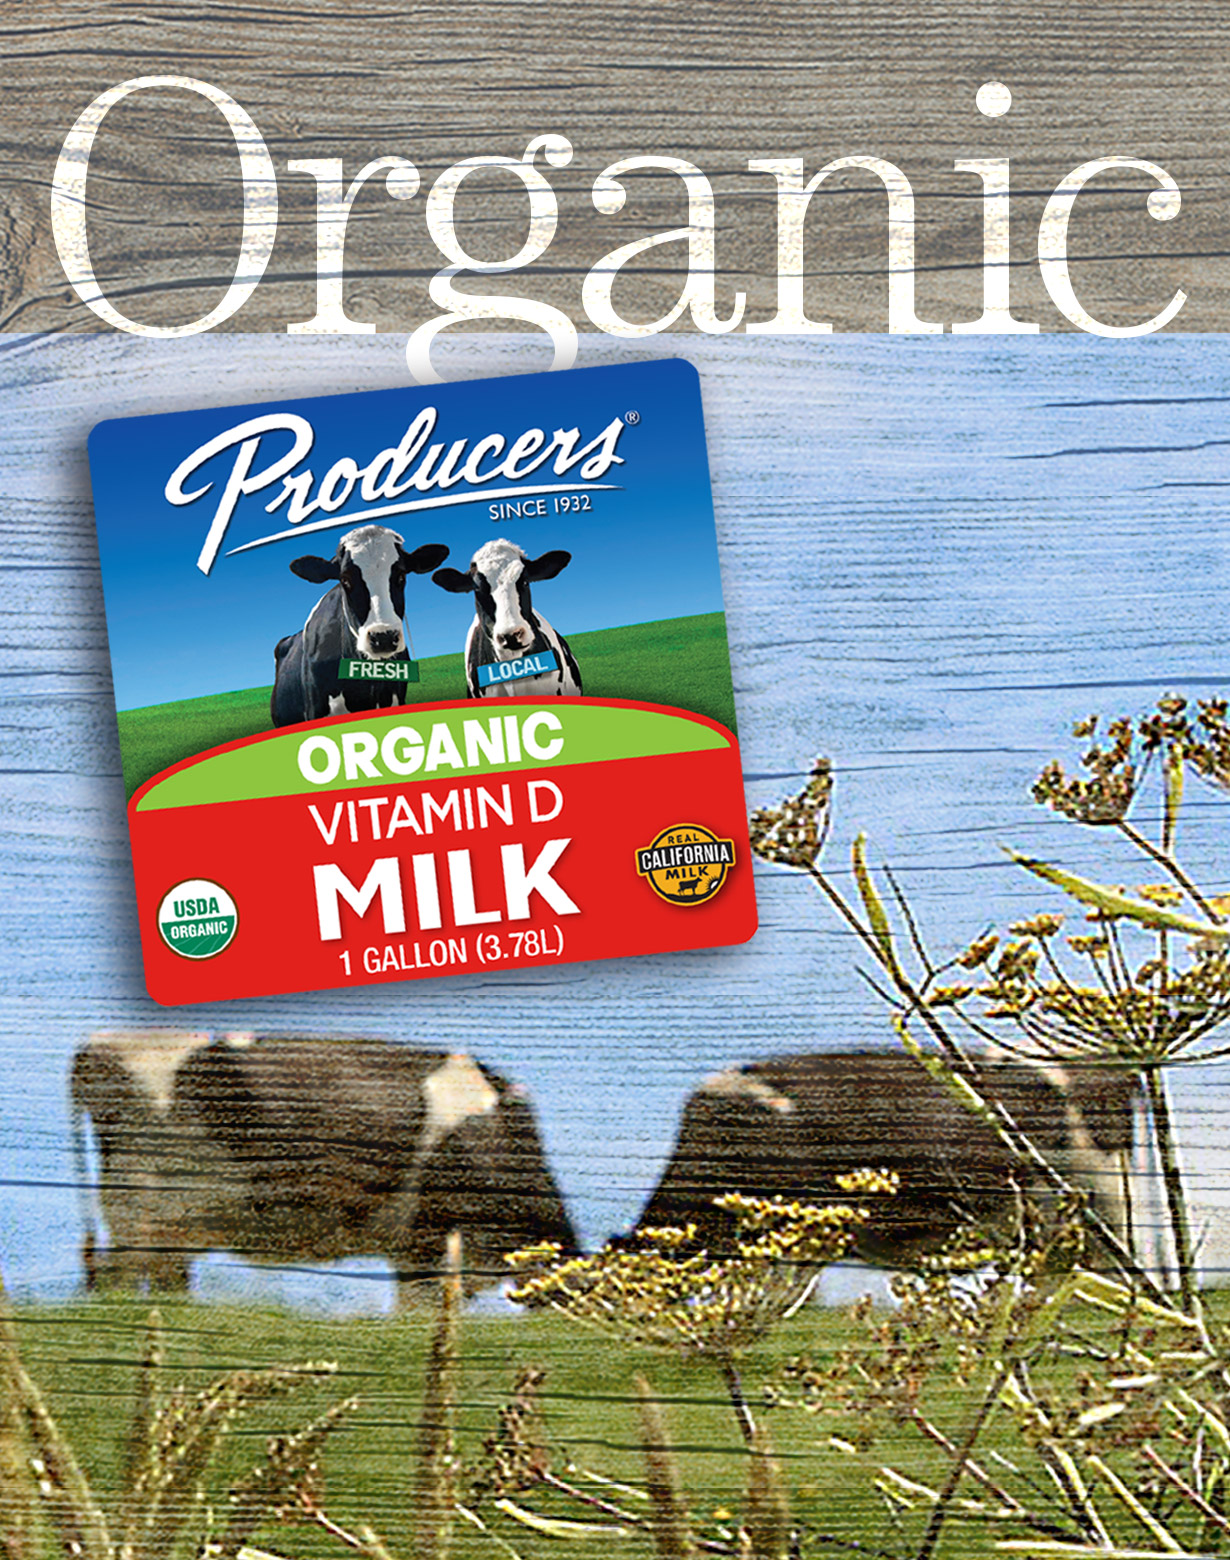 Click here to learn about our frequently asked questions on organic milk.